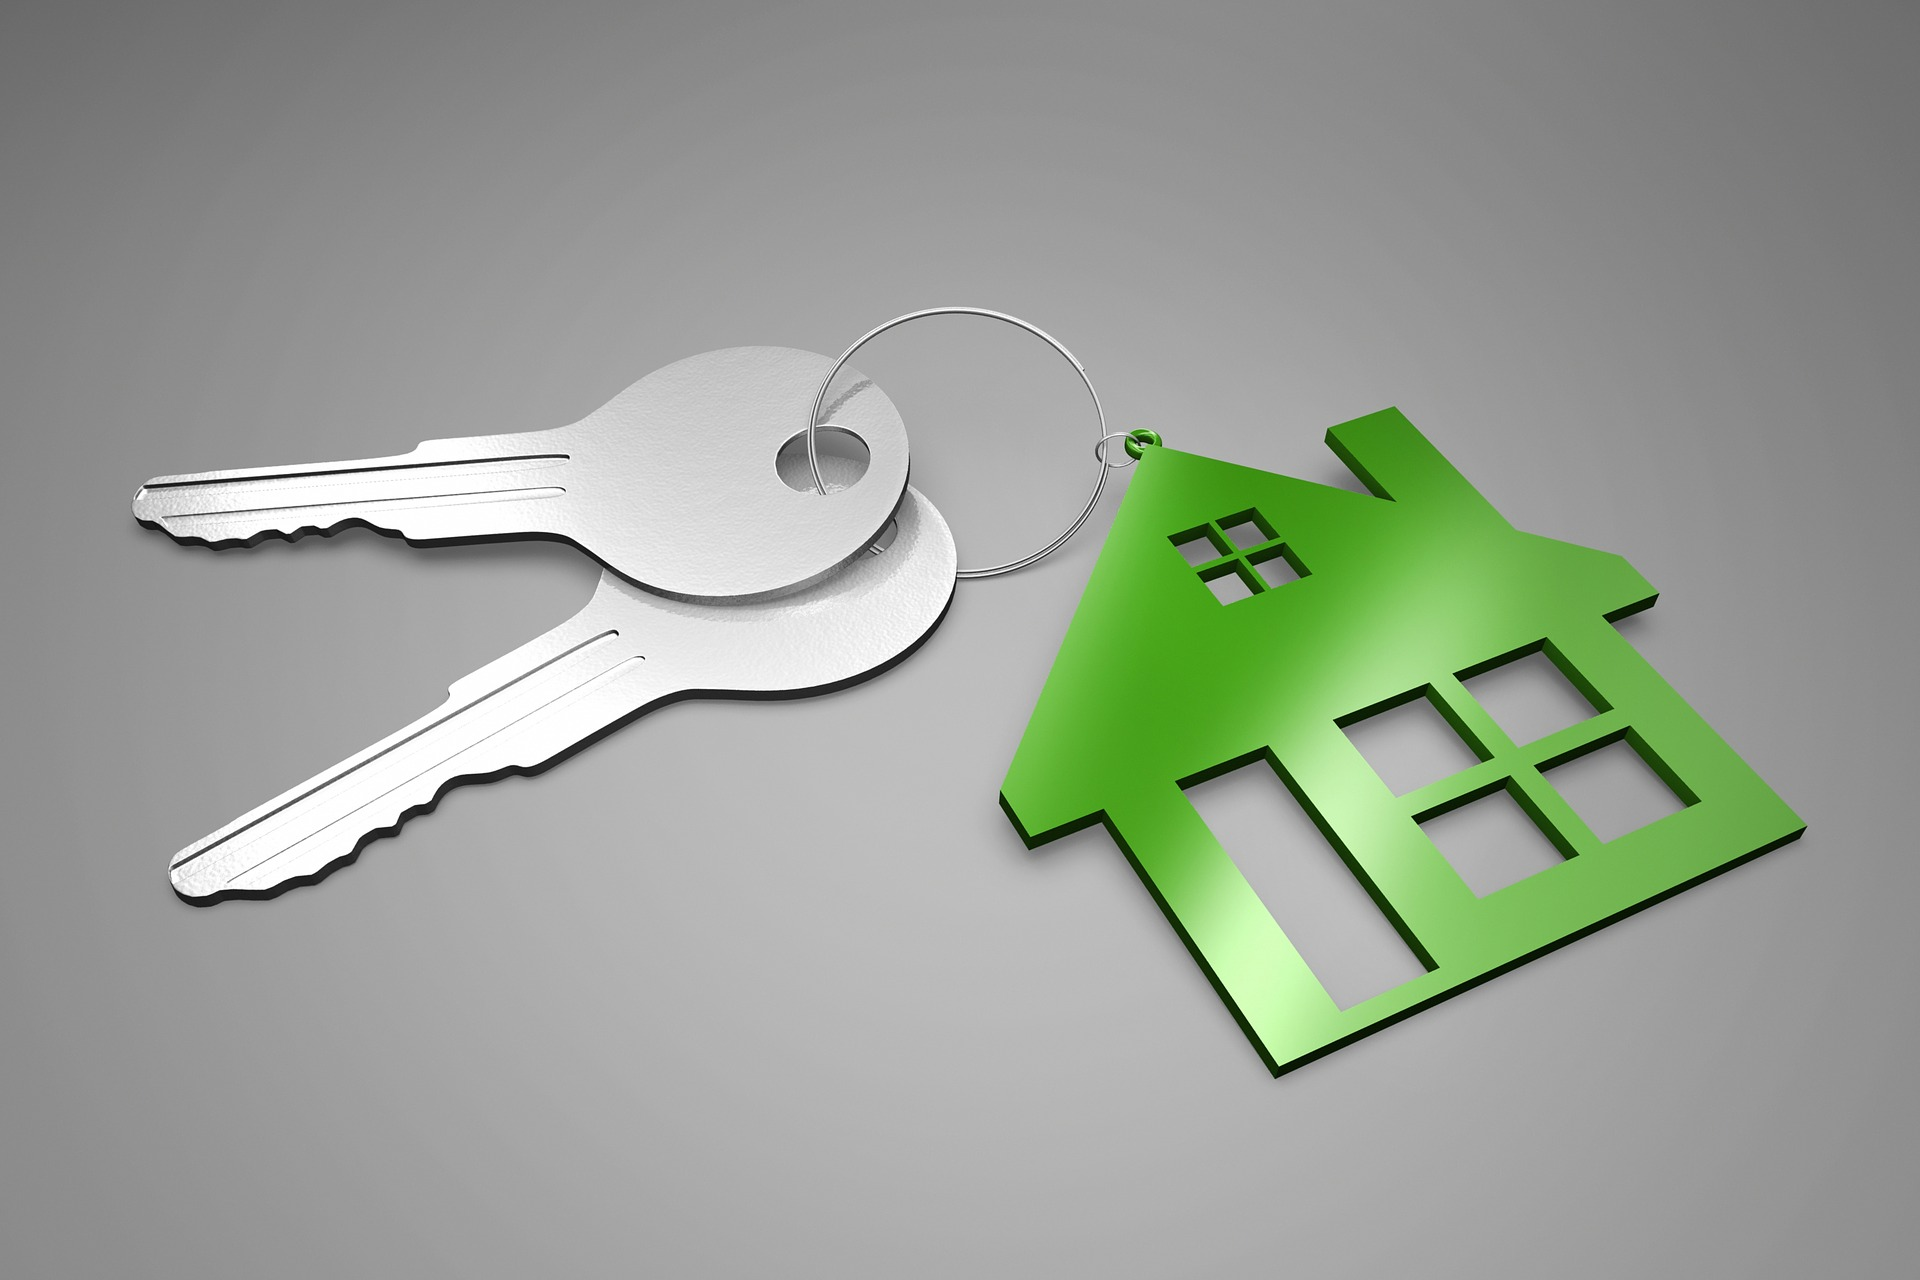 Image render of a keychain with silver keys and green house